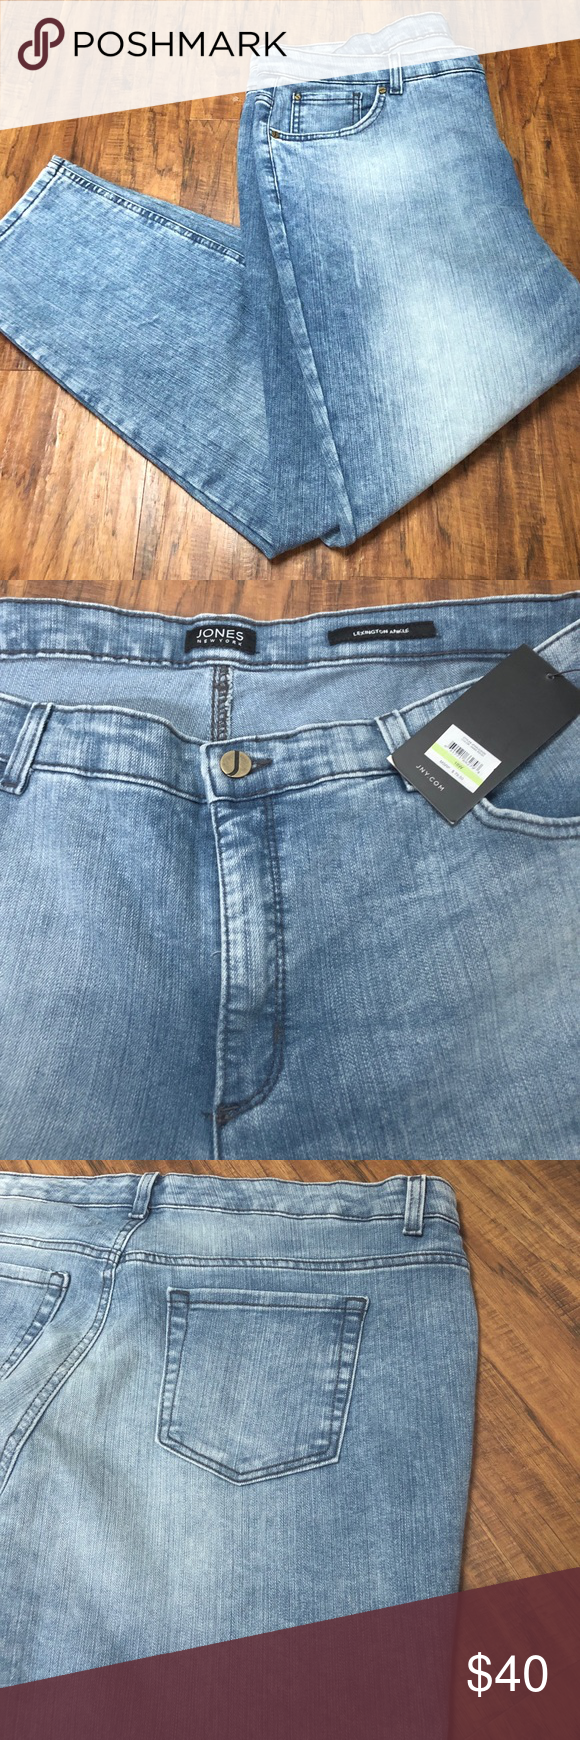 f815d51c8bfbd Jones New York Plus Size Lexington Ankle Jeans New with tags. Size 18W.  Light wash. Jones New York Pants Straight Leg